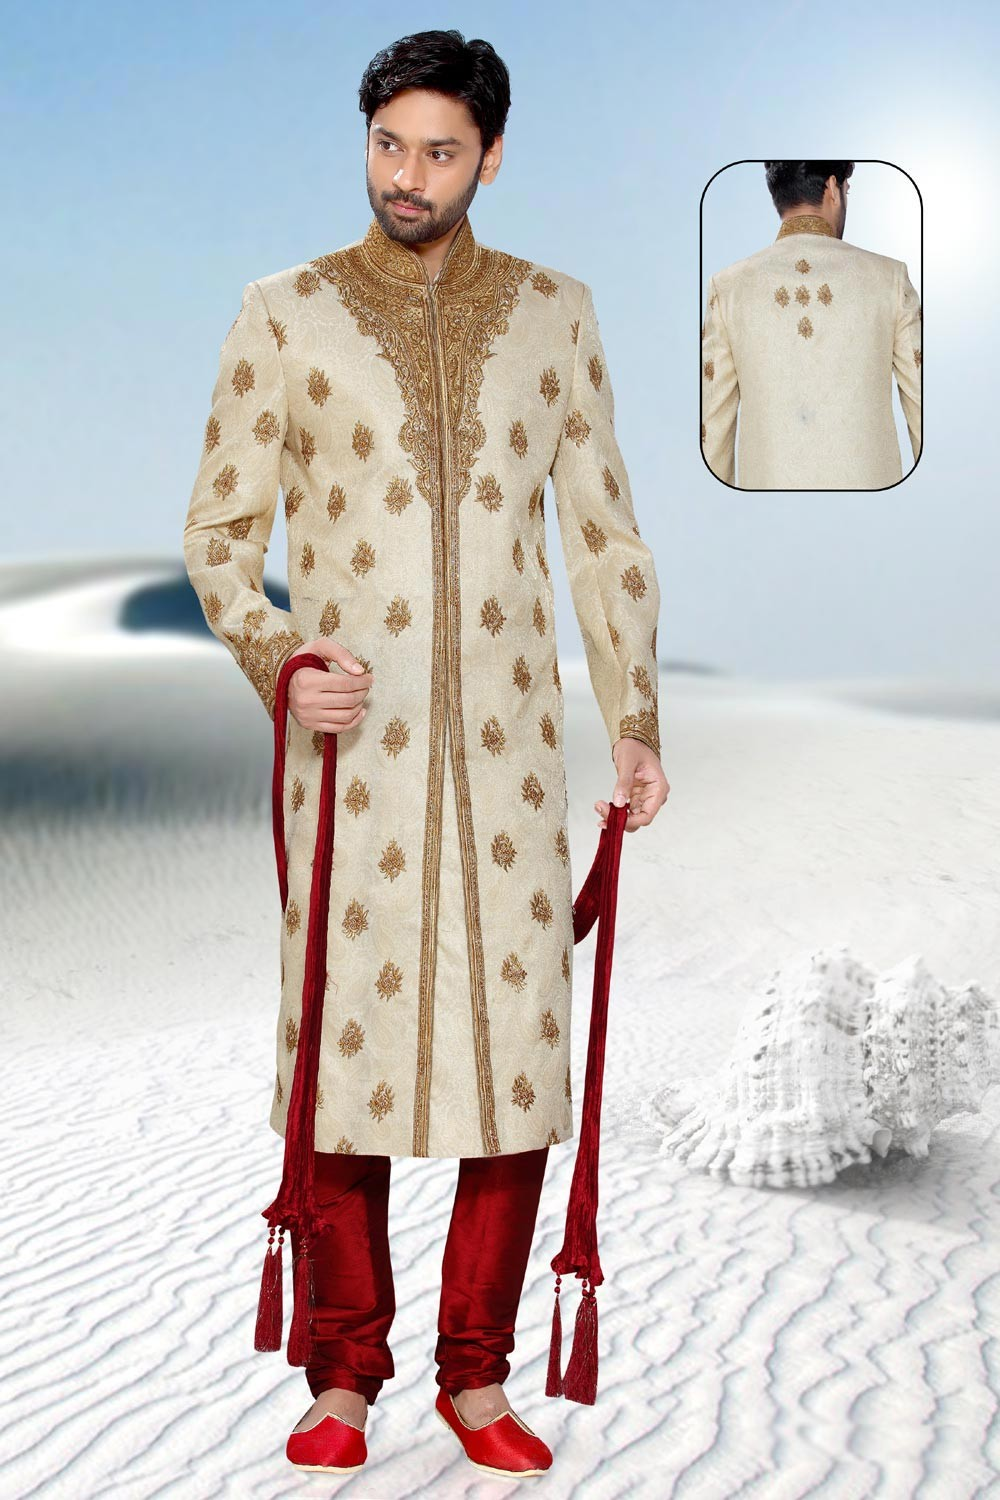 Golden Jamawar Men's Sherwani